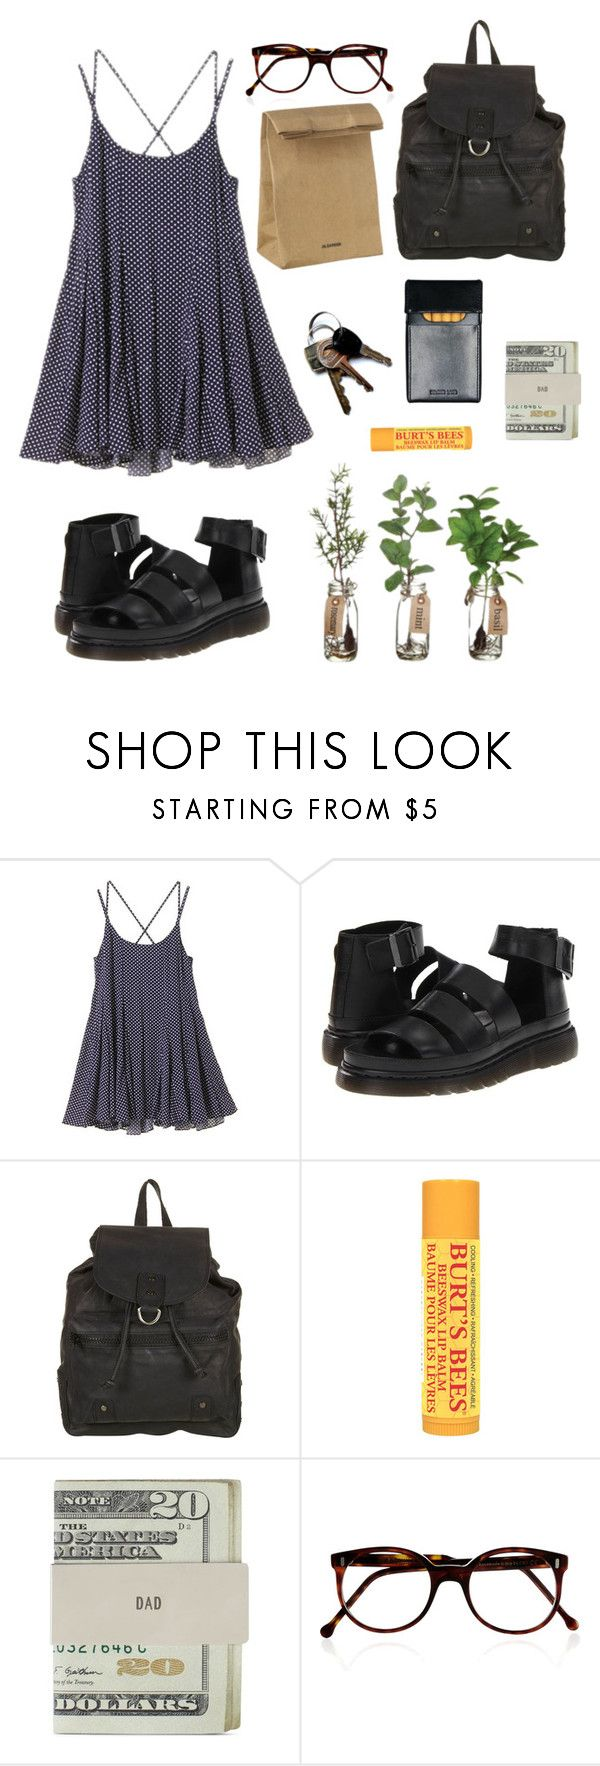 """""""wake me up when it's all over"""" by cubs ❤ liked on Polyvore featuring Dr. Martens, Burt's Bees, Jack Spade, Cutler and Gross and Jil Sander"""